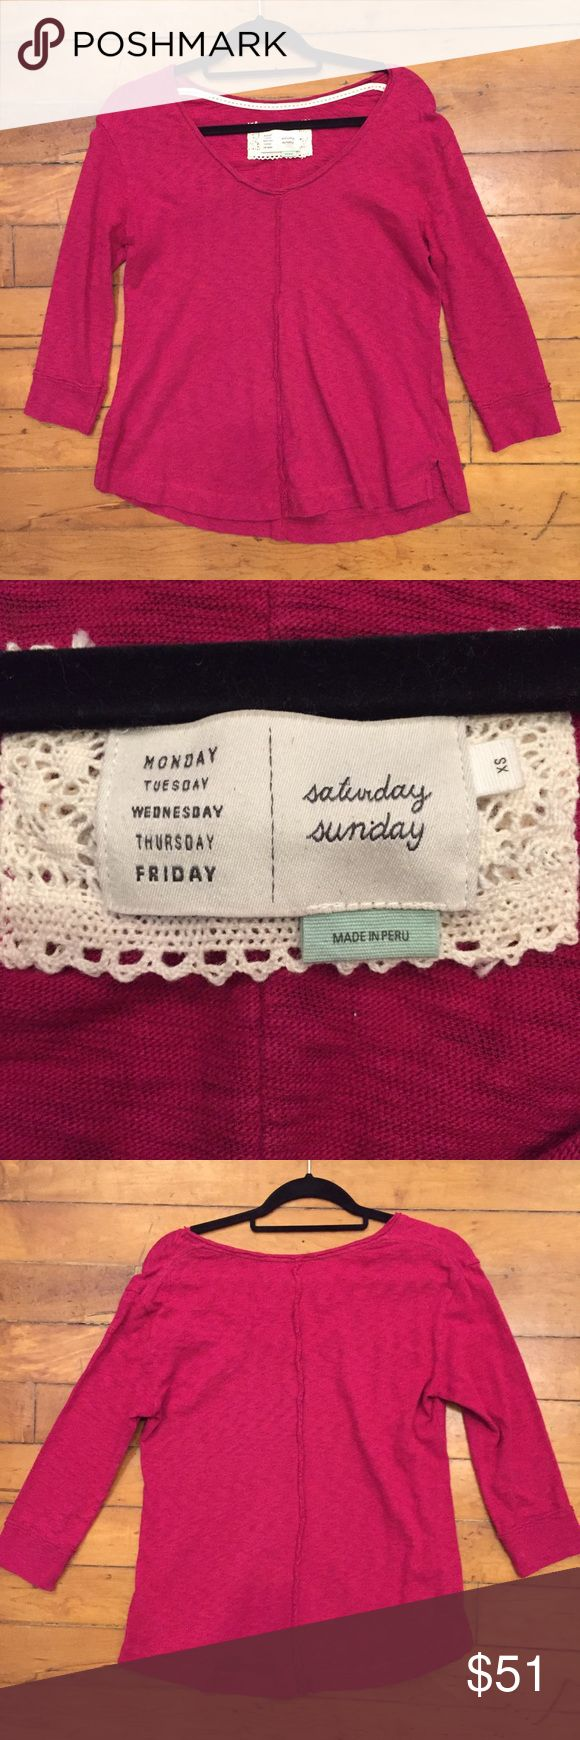 Anthropologie Brand Saturday Sunday Fuchsia Top Anthropologie brand called Saturday Sunday ⚜️I love receiving offers through the offer button!⚜️ Great condition, as seen in pictures! Fast same or next day shipping!📨 Open to offers but I don't negotiate in the comments so please use the offer button😊 p Anthropologie Tops